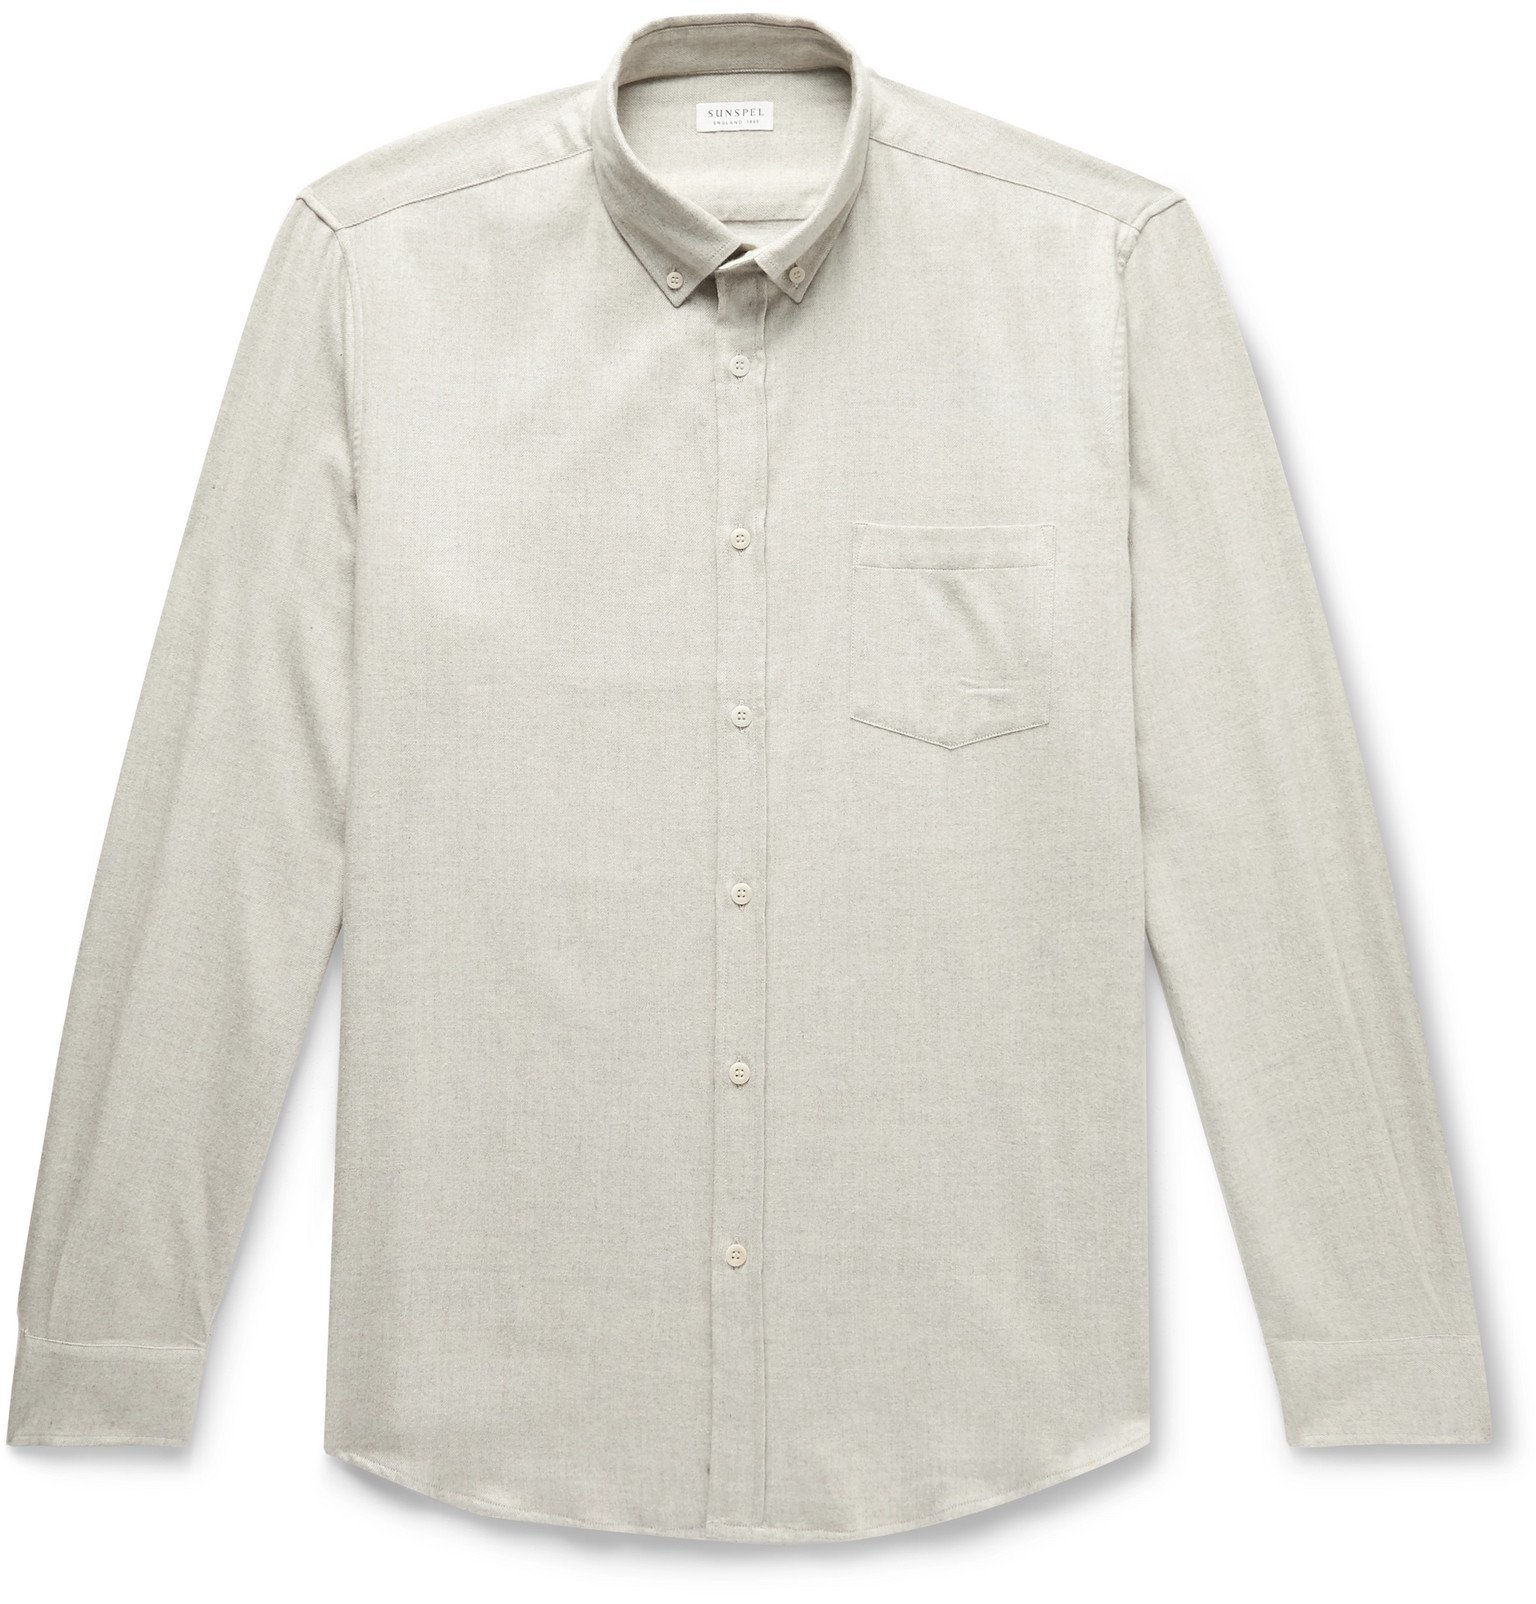 Sunspel - Button-Down Collar Brushed Cotton-Flannel Shirt - White